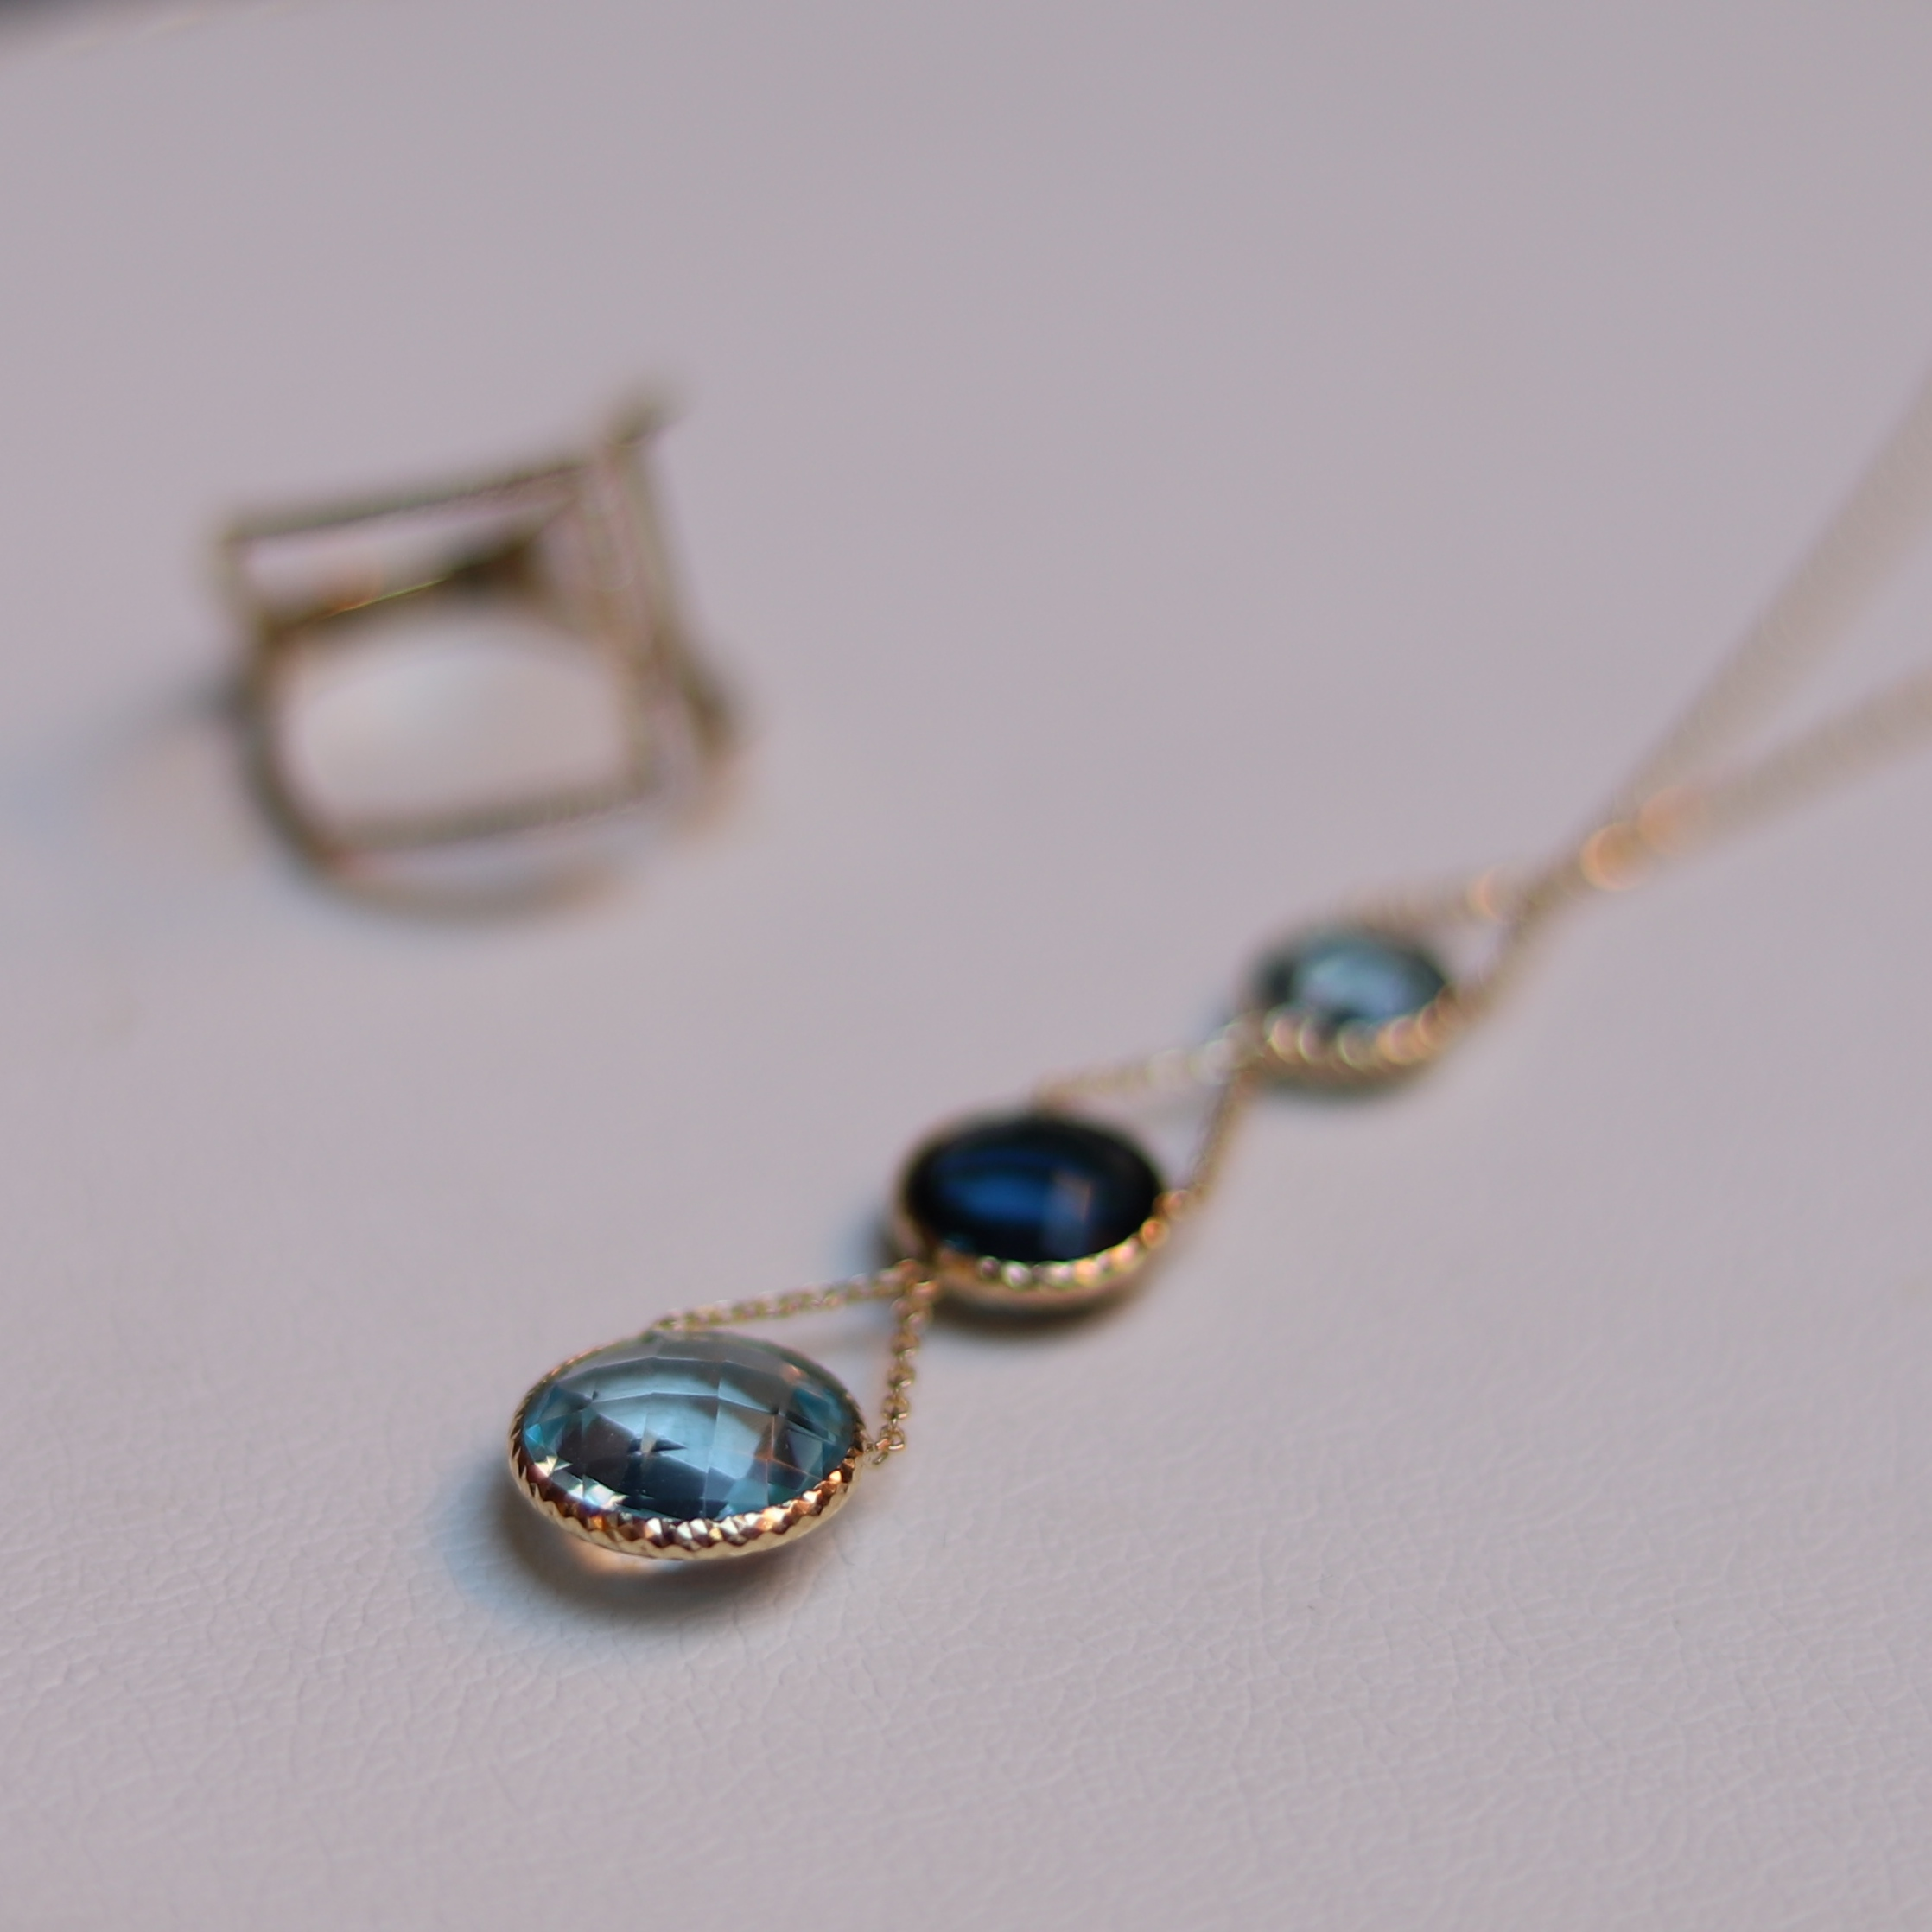 Zoccai / topaz necklace , Heroomtage / ring